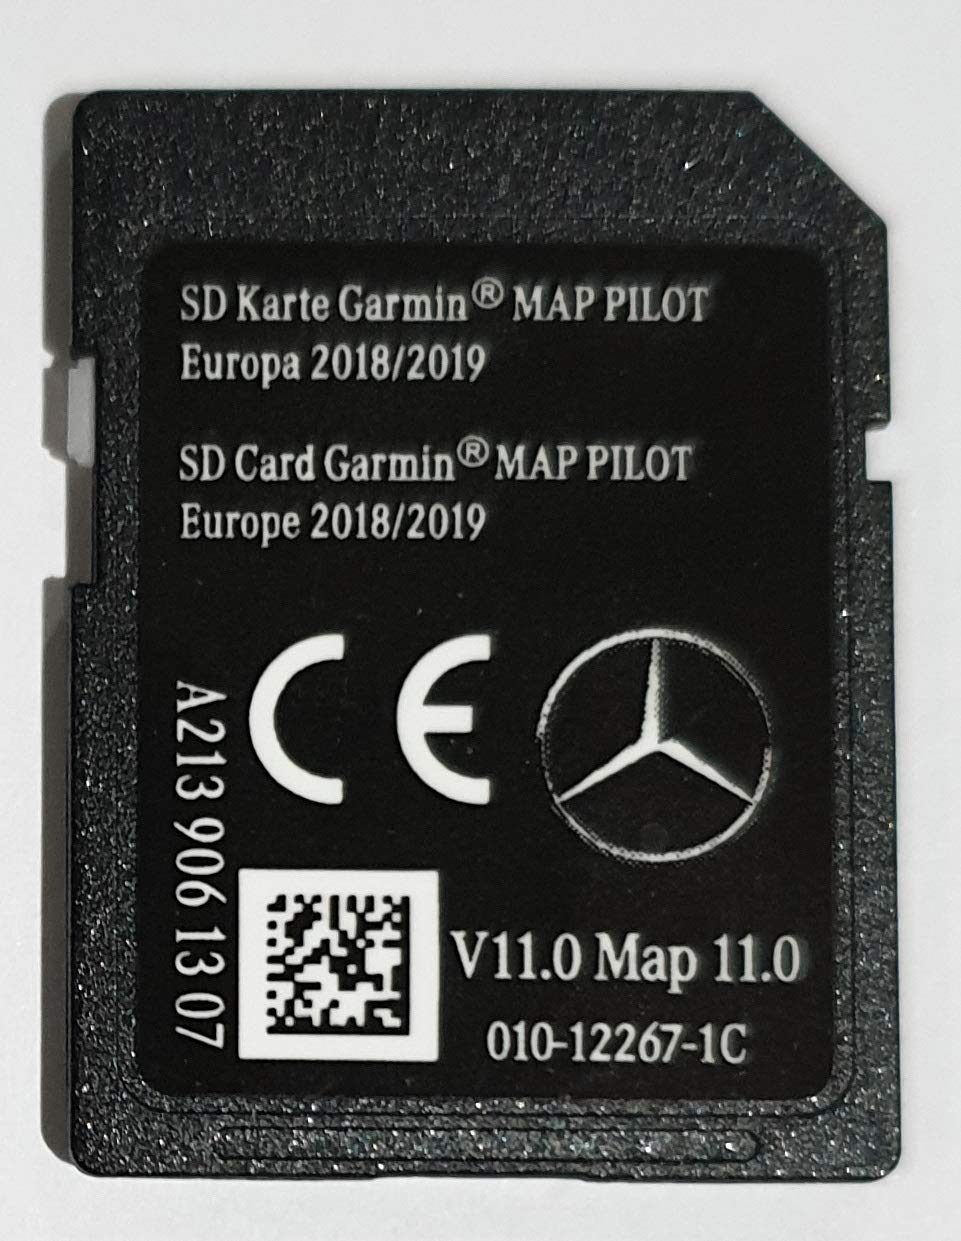 SD-Karte-Mercedes-Garmin-MAP-Pilot-Europe-2018-2019-STAR2-A2139061307